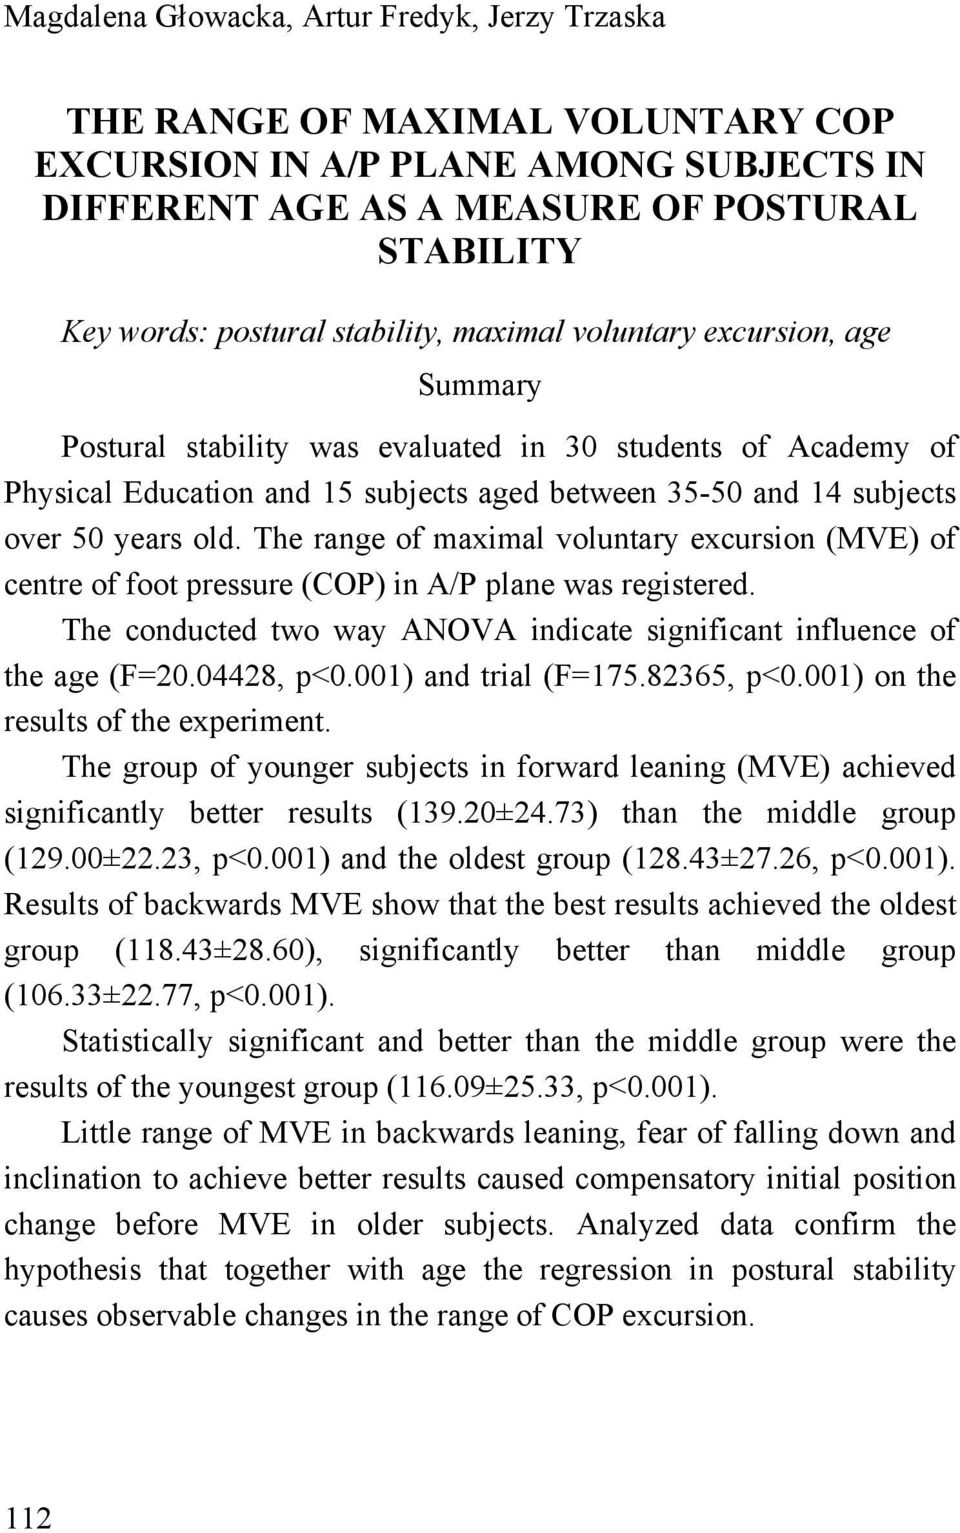 old. The range of maximal voluntary excursion (MVE) of centre of foot pressure (COP) in A/P plane was registered. The conducted two way ANOVA indicate significant influence of the age (F=20.